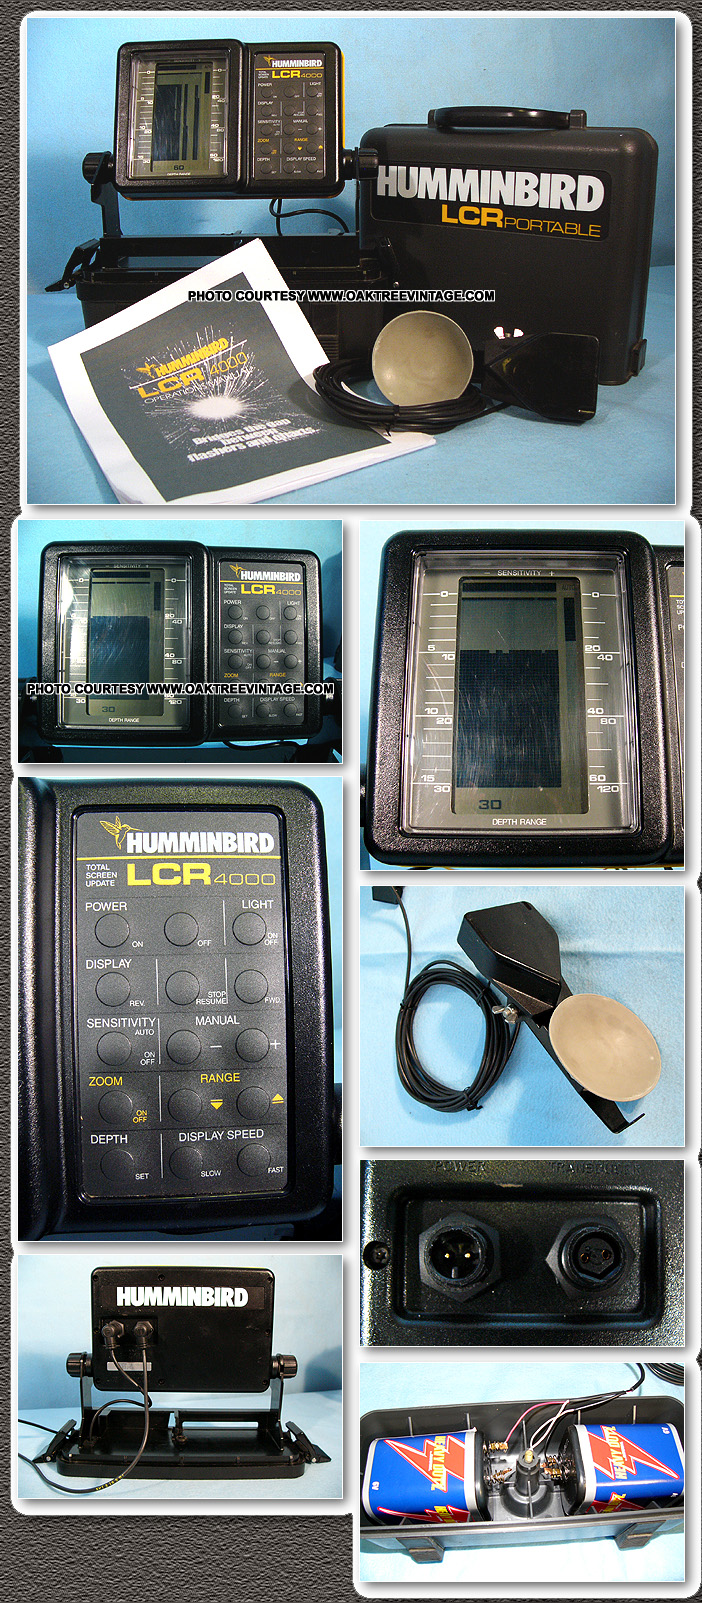 Humminbird Lcr 4000